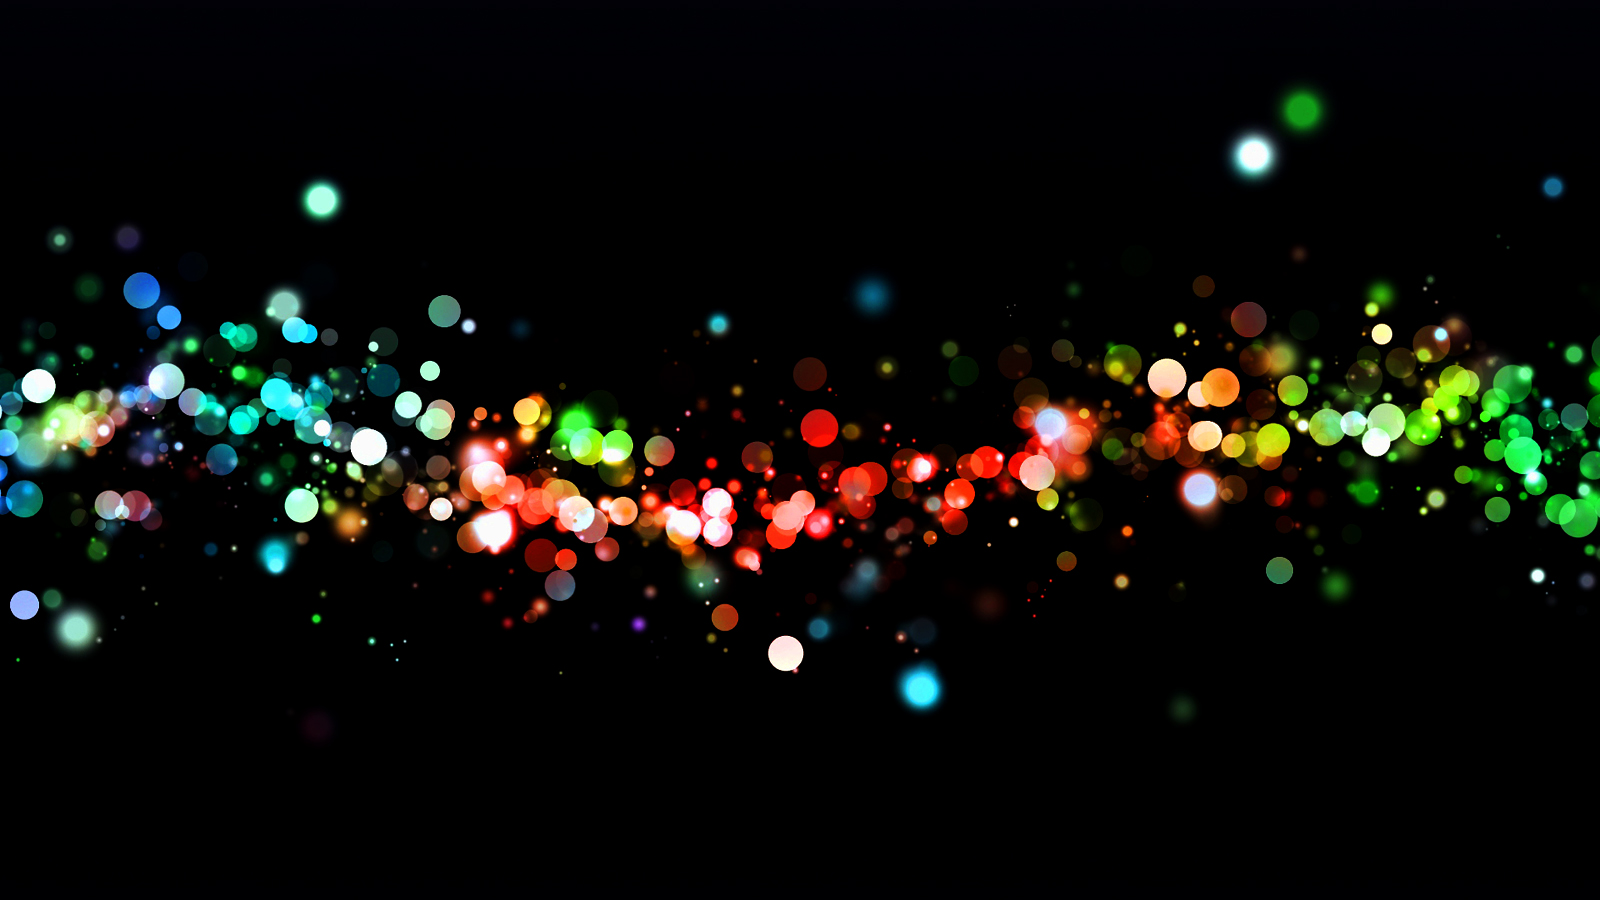 Hd Design String Lights : Abstract Light Circles Bokeh HD Wallpapers Desktop Wallpapers